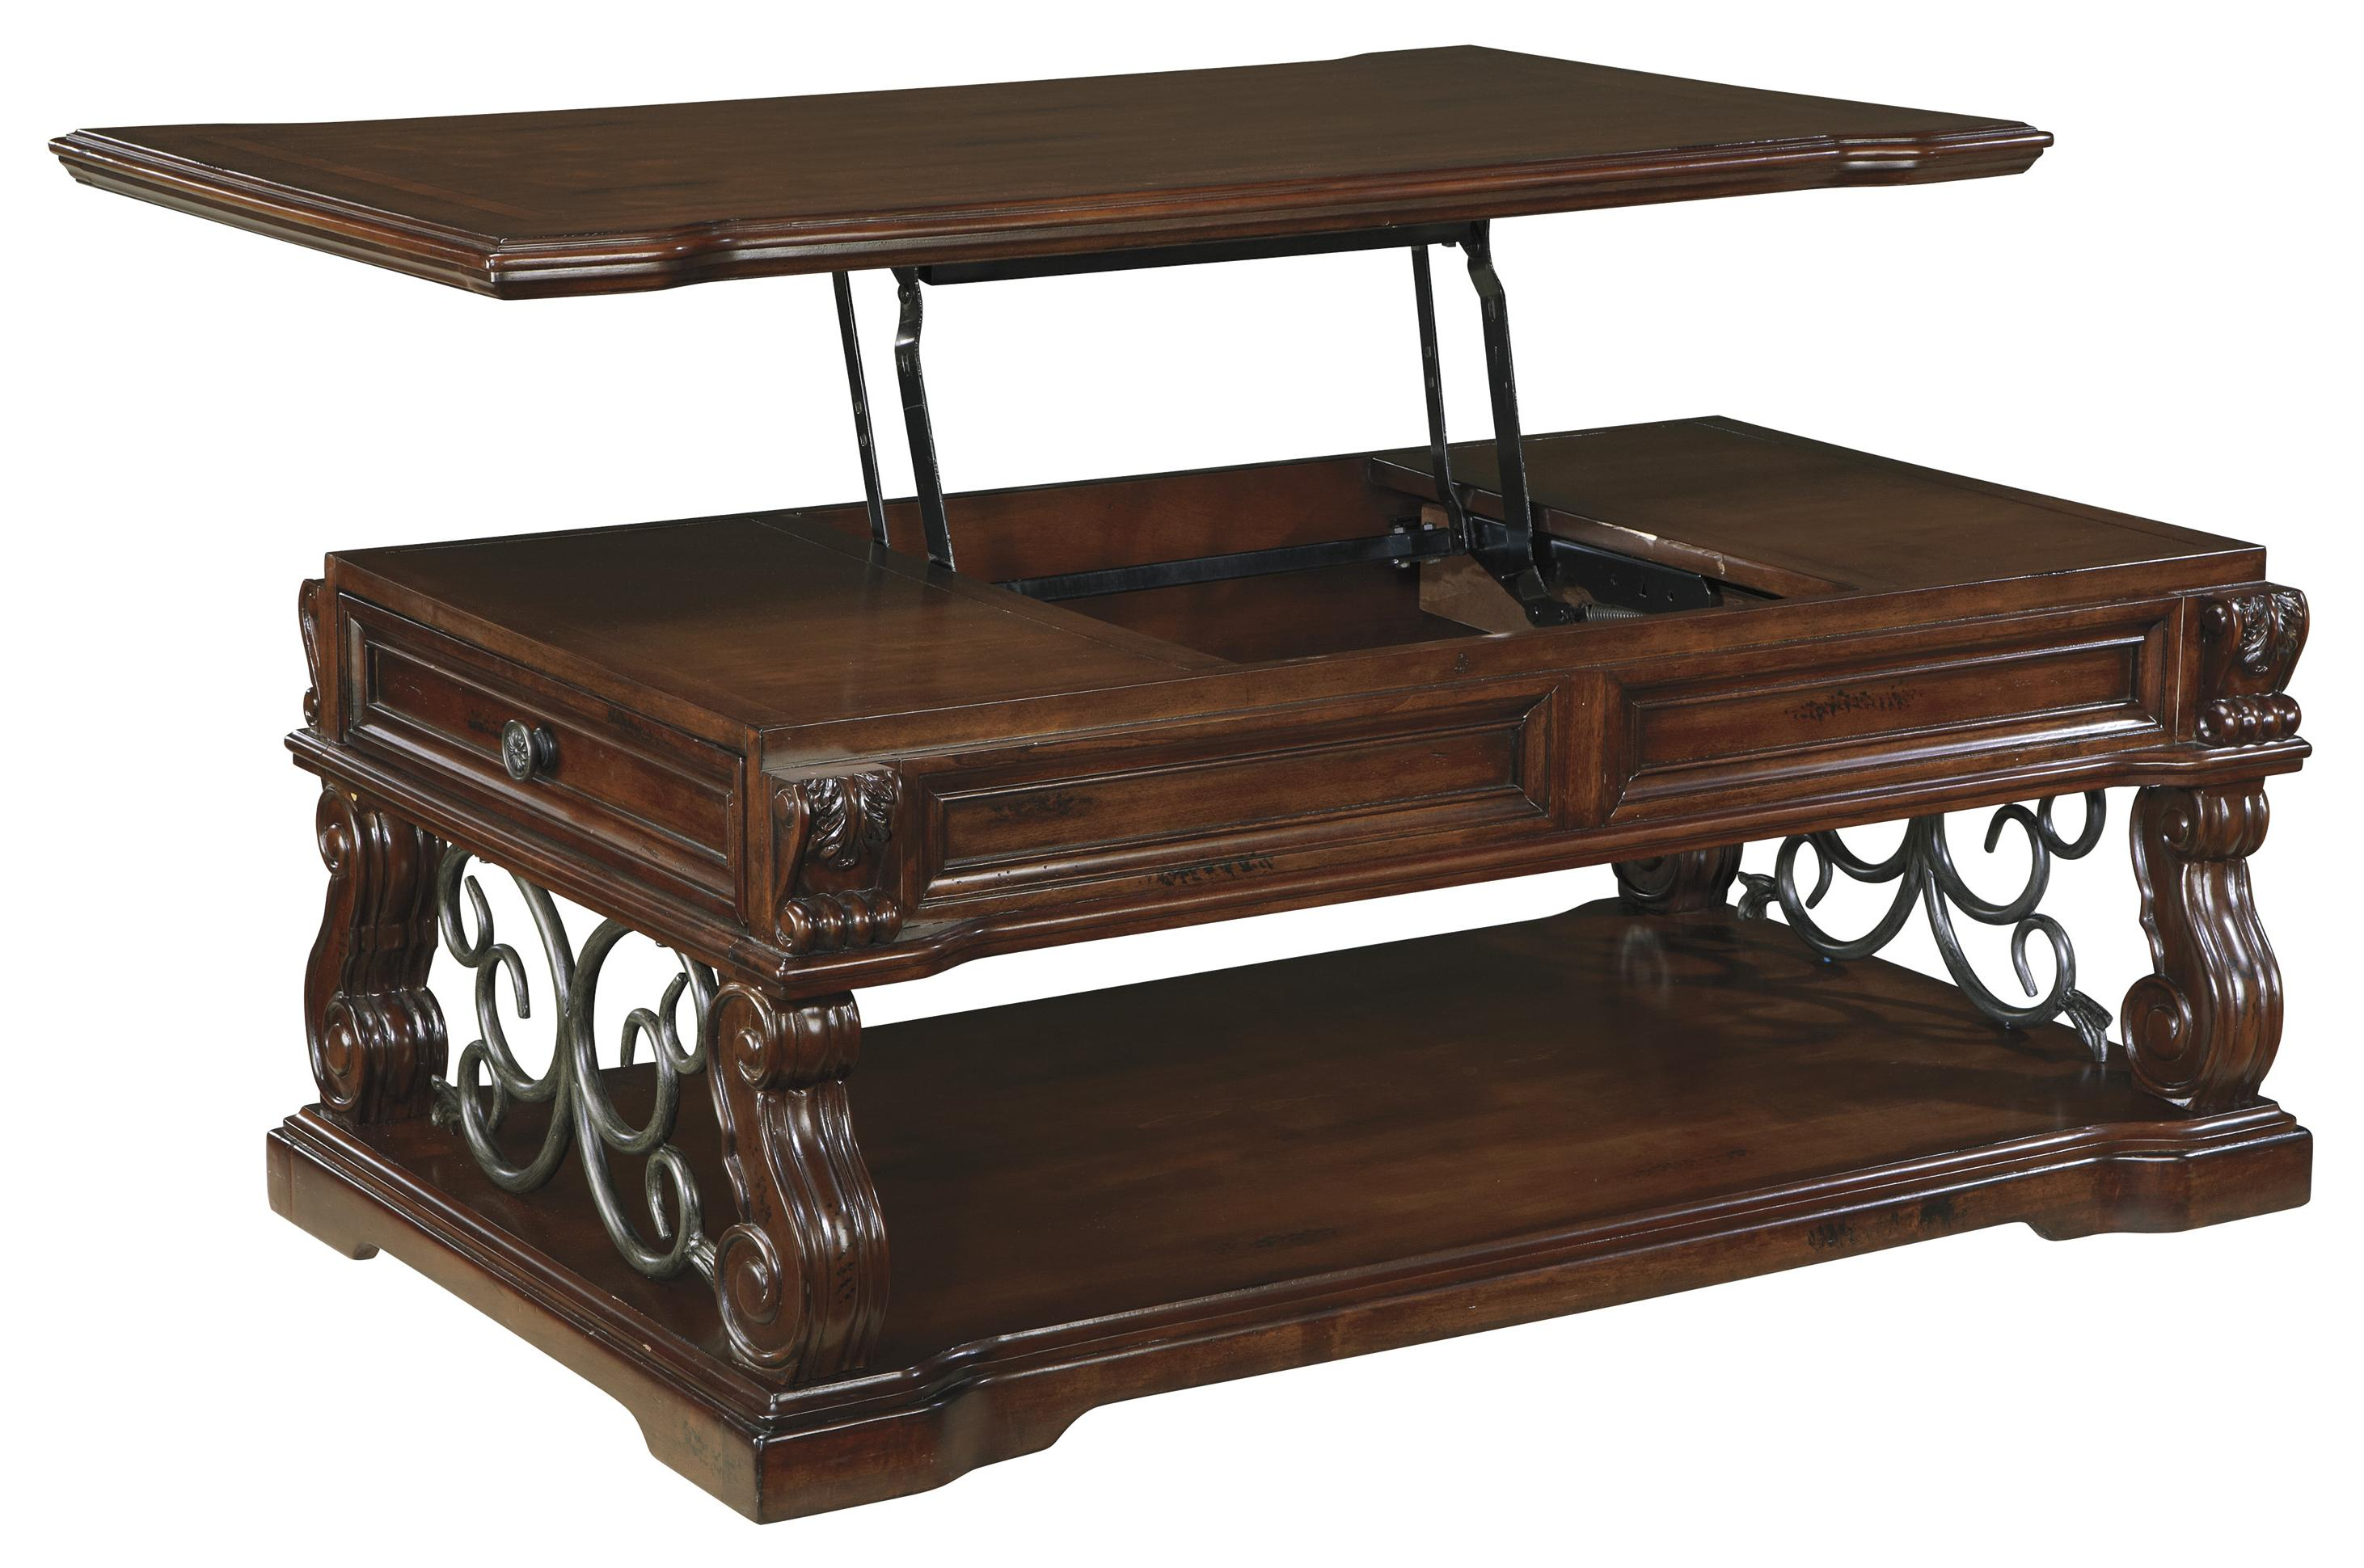 Traditional Lift Top Cocktail Table With 2 Drawers 1 Shelf By Signature Design By Ashley